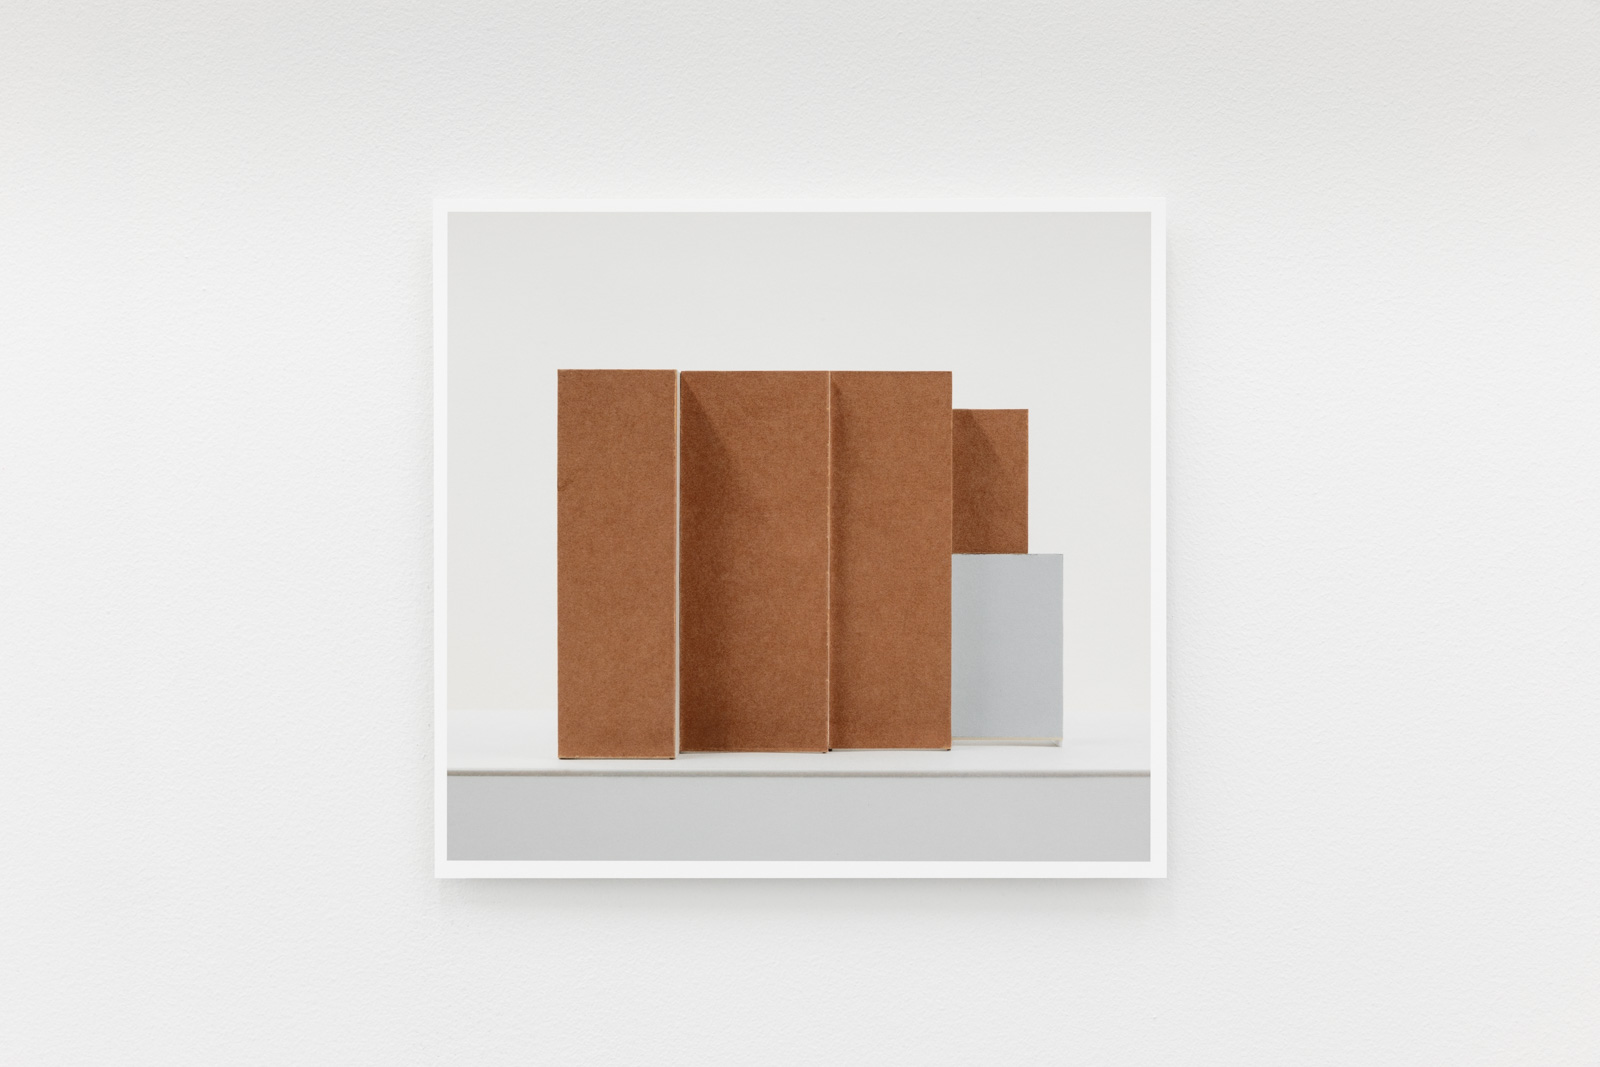 40 Pictures No 38/40, 2019. Archival inkjet print on Canson rag 210 gr. mounted on white acrylic glass. 31,7 x 34,4 cm. Ed. 5 + 2AP